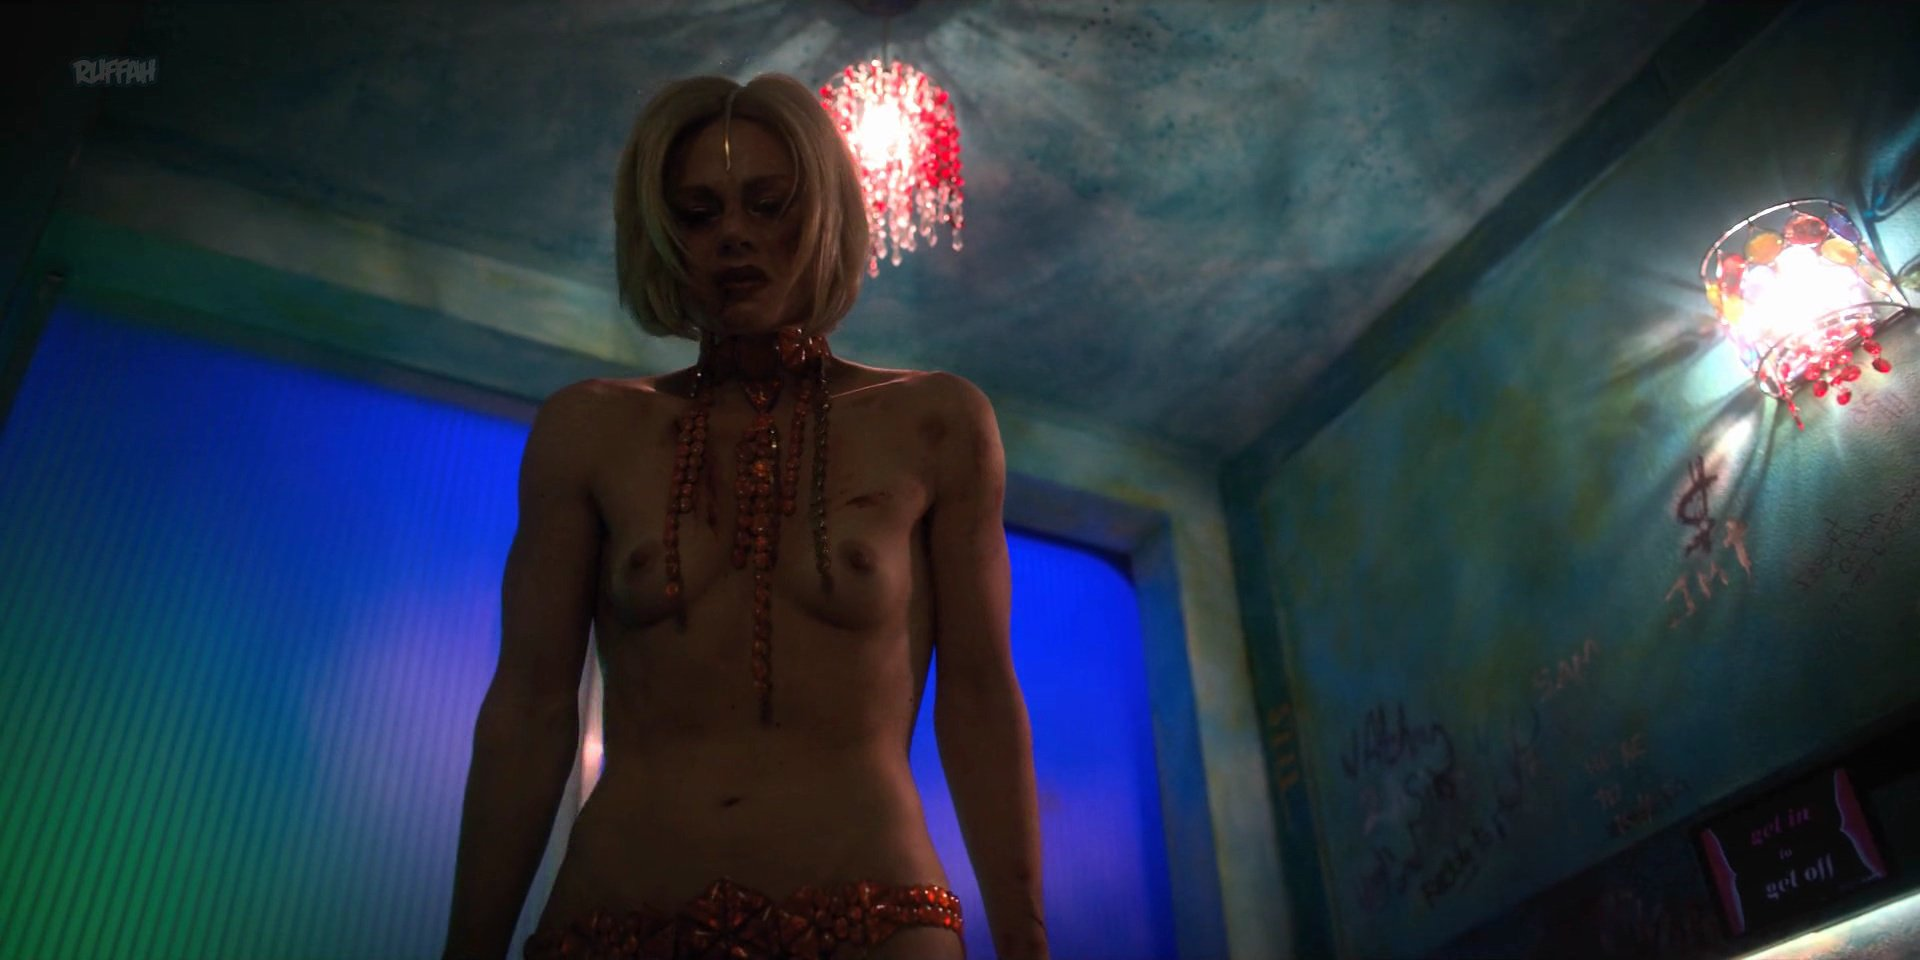 Stephanie Cleough nude - Altered Carbon s01e03 (2018)